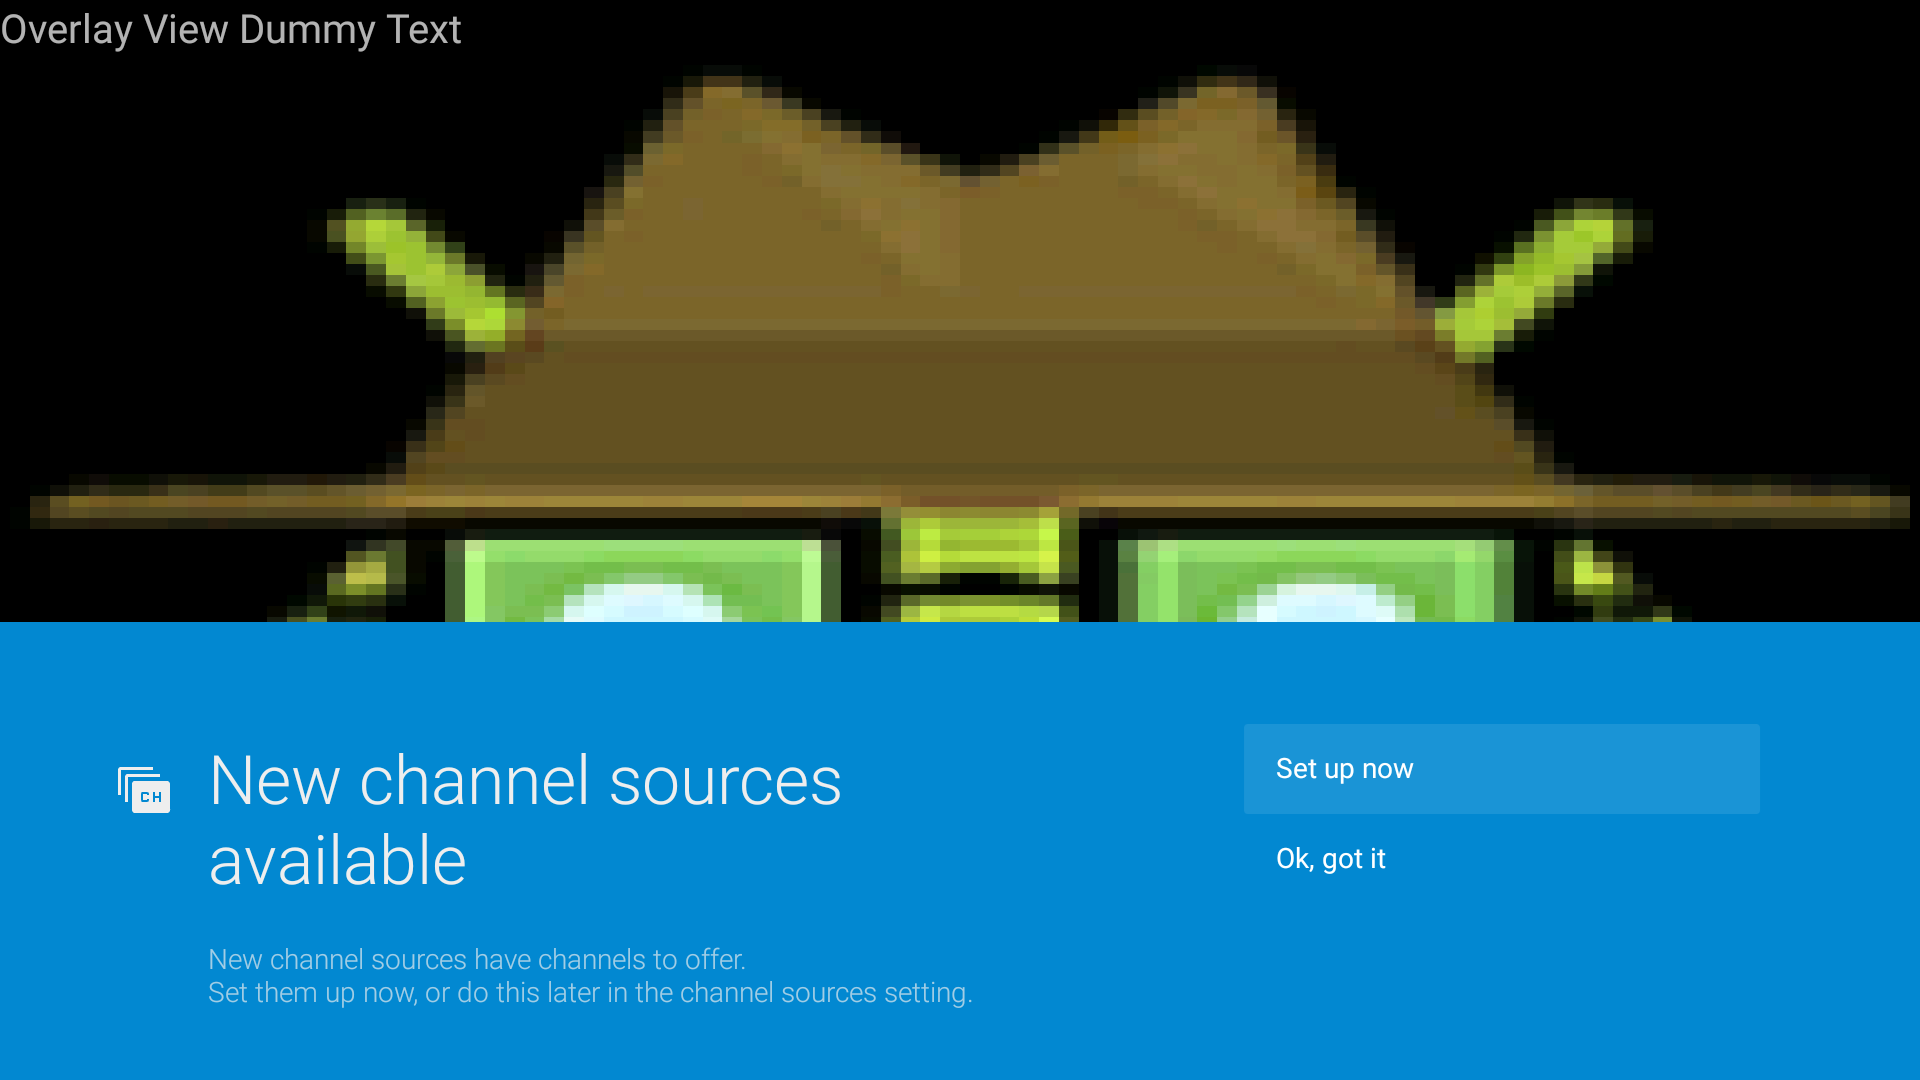 Notification that shows new channel sources are available.